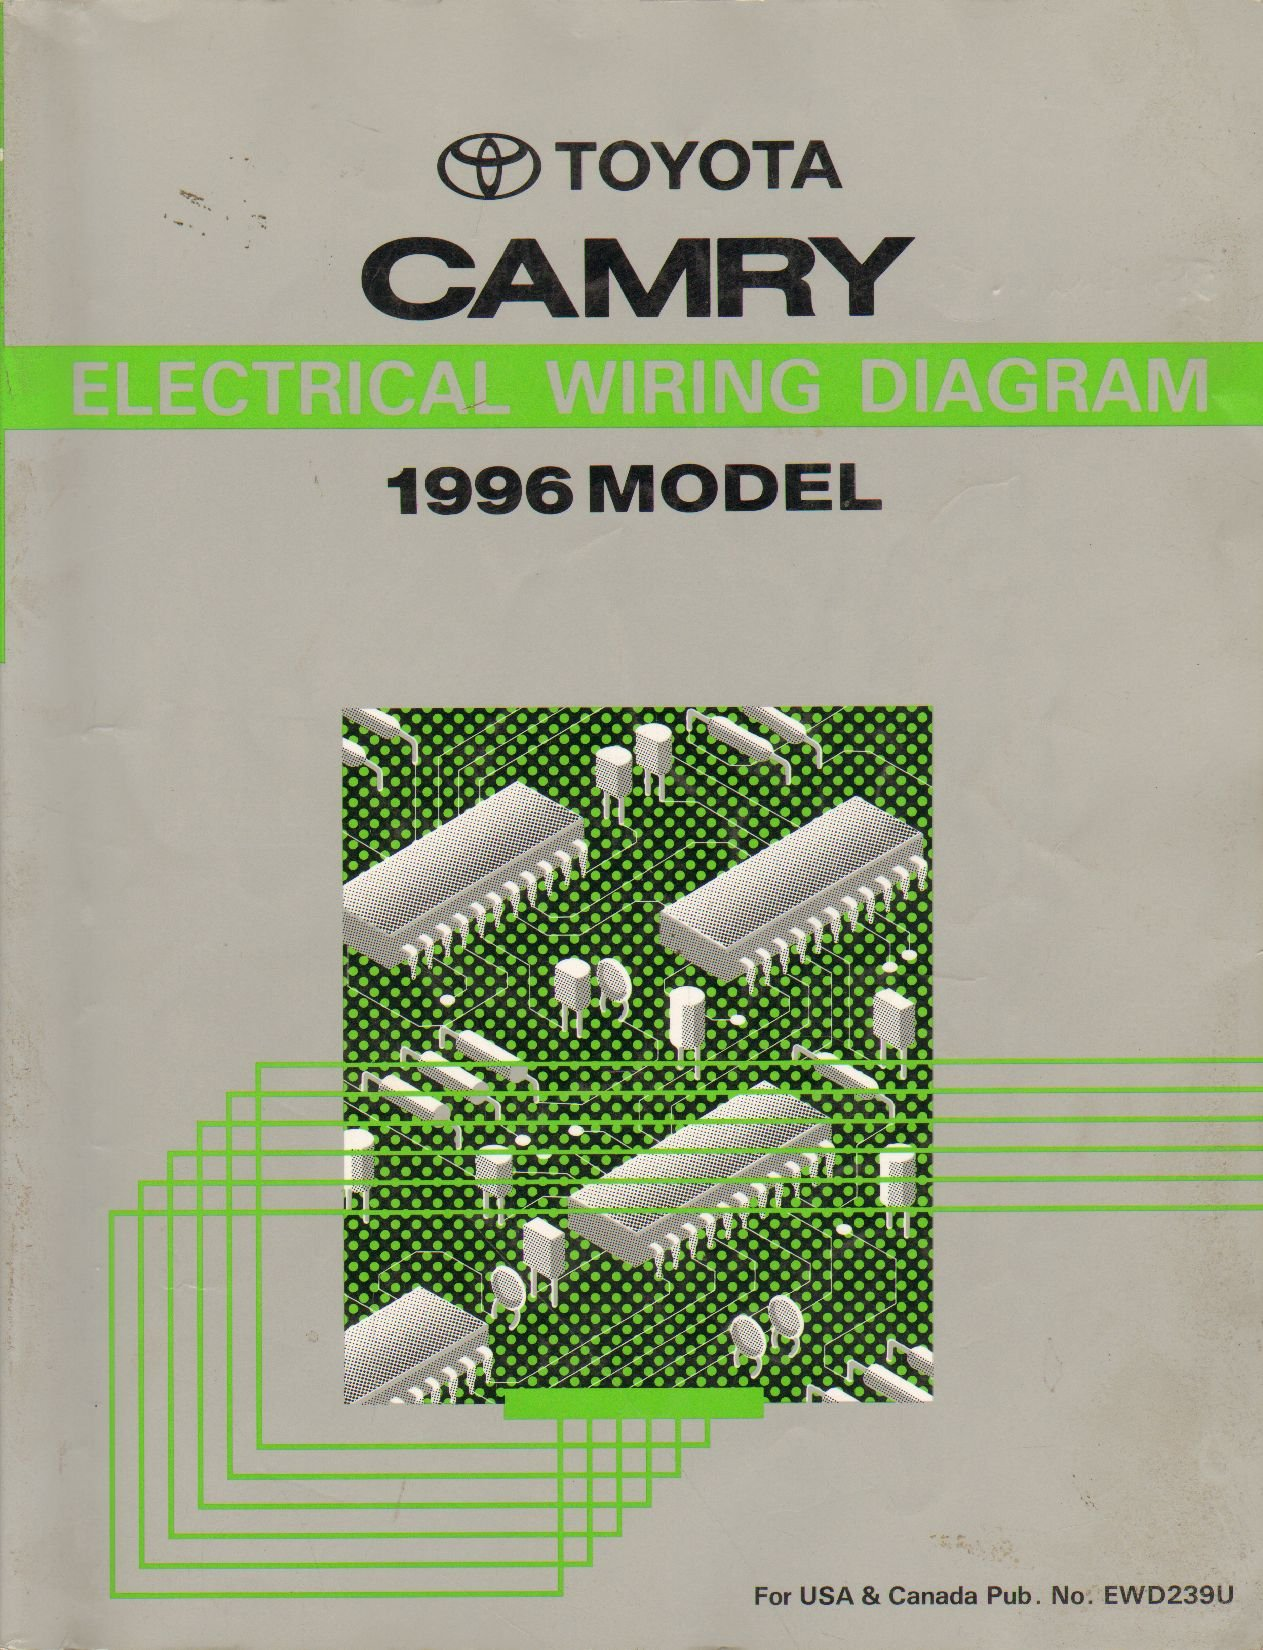 1996 toyota camry electrical wiring diagram shop manual: toyota:  amazon.com: books  amazon.com